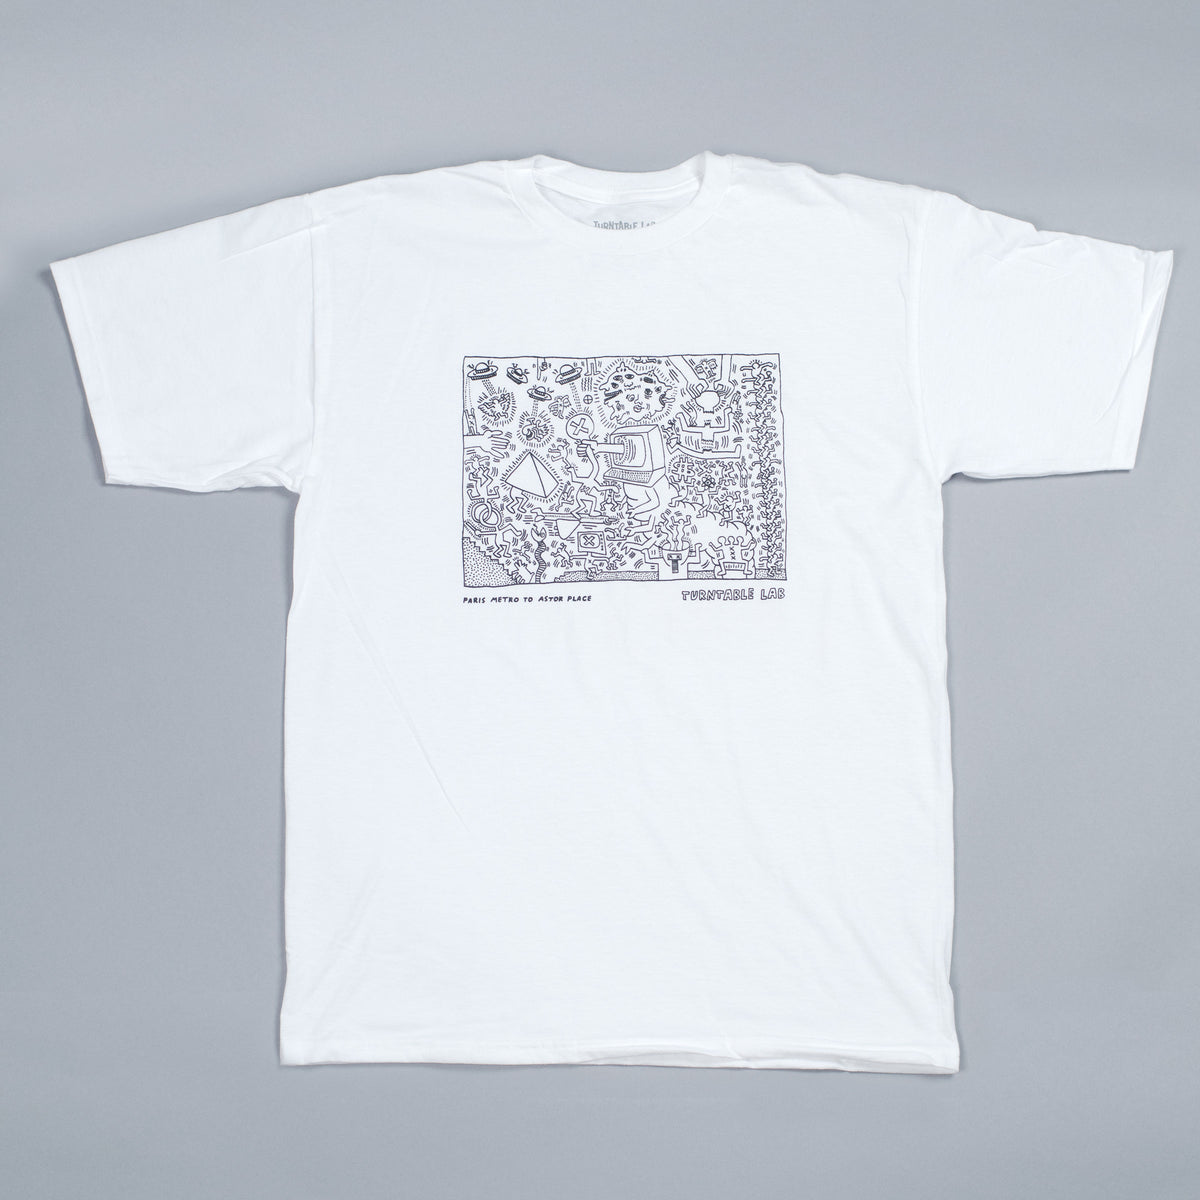 Turntable Lab: Keith Haring Astor Place Shirt - White